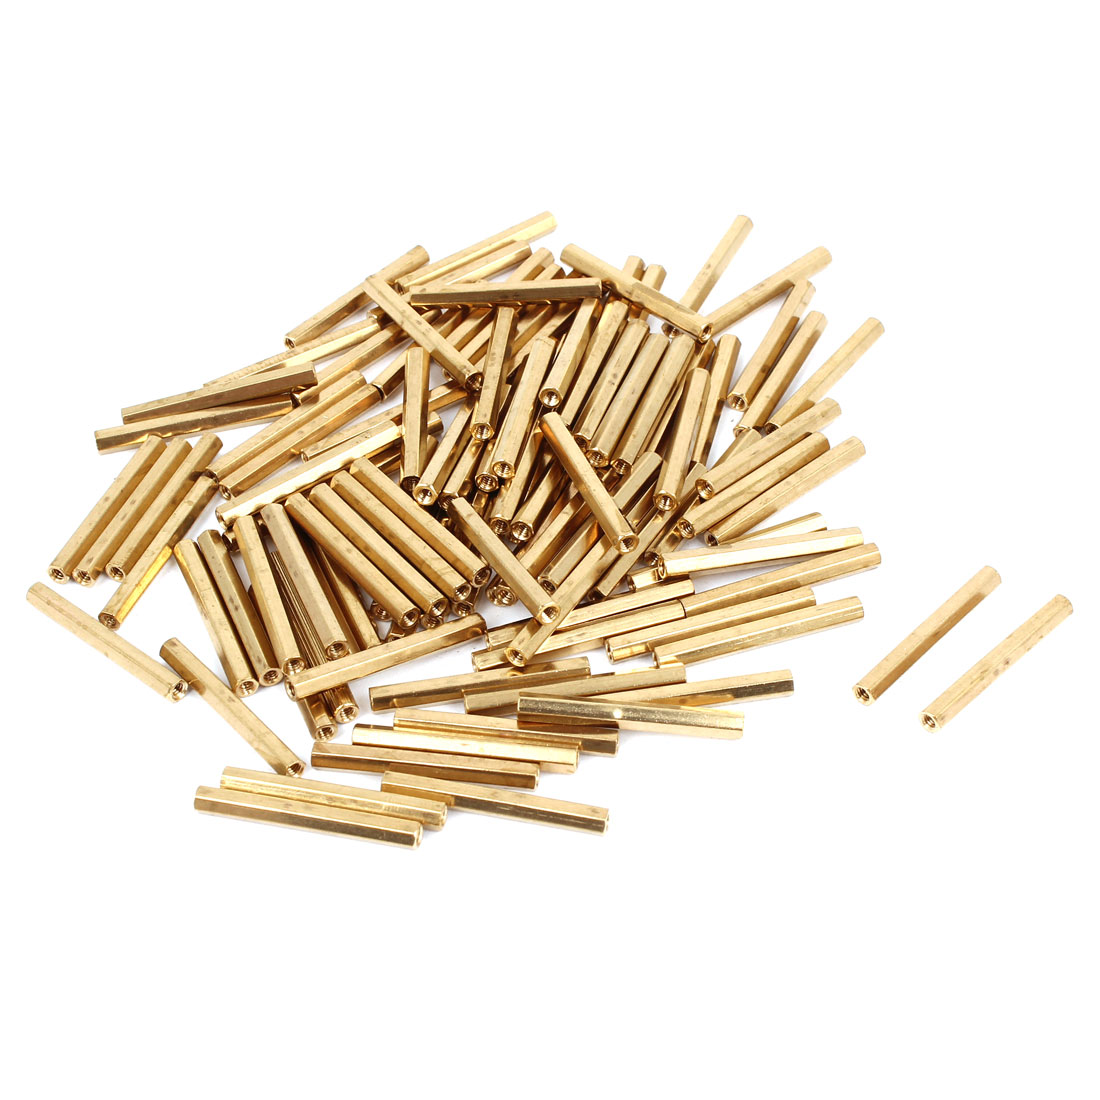 100 Pcs M2 Female Thread Brass Pillar Standoff Hexagonal Spacer 26mm Length